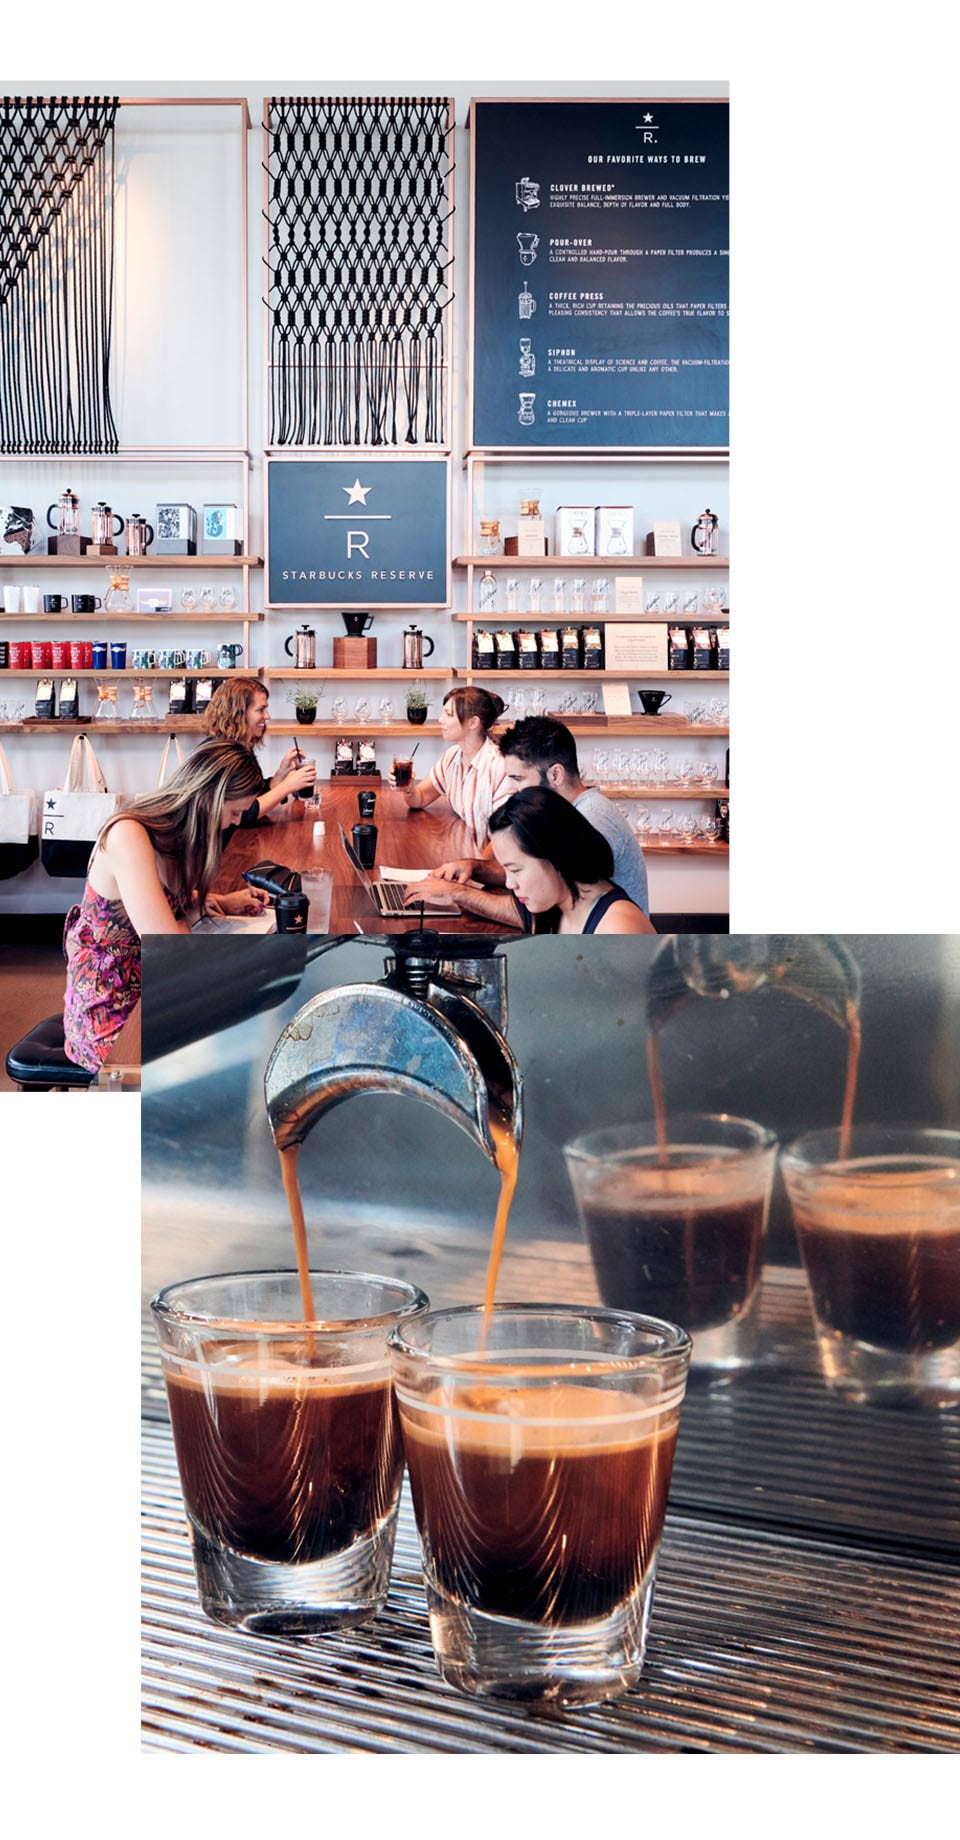 Collage with closeup of espresso machine and people concentrating on individual activities while sitting at a communal table